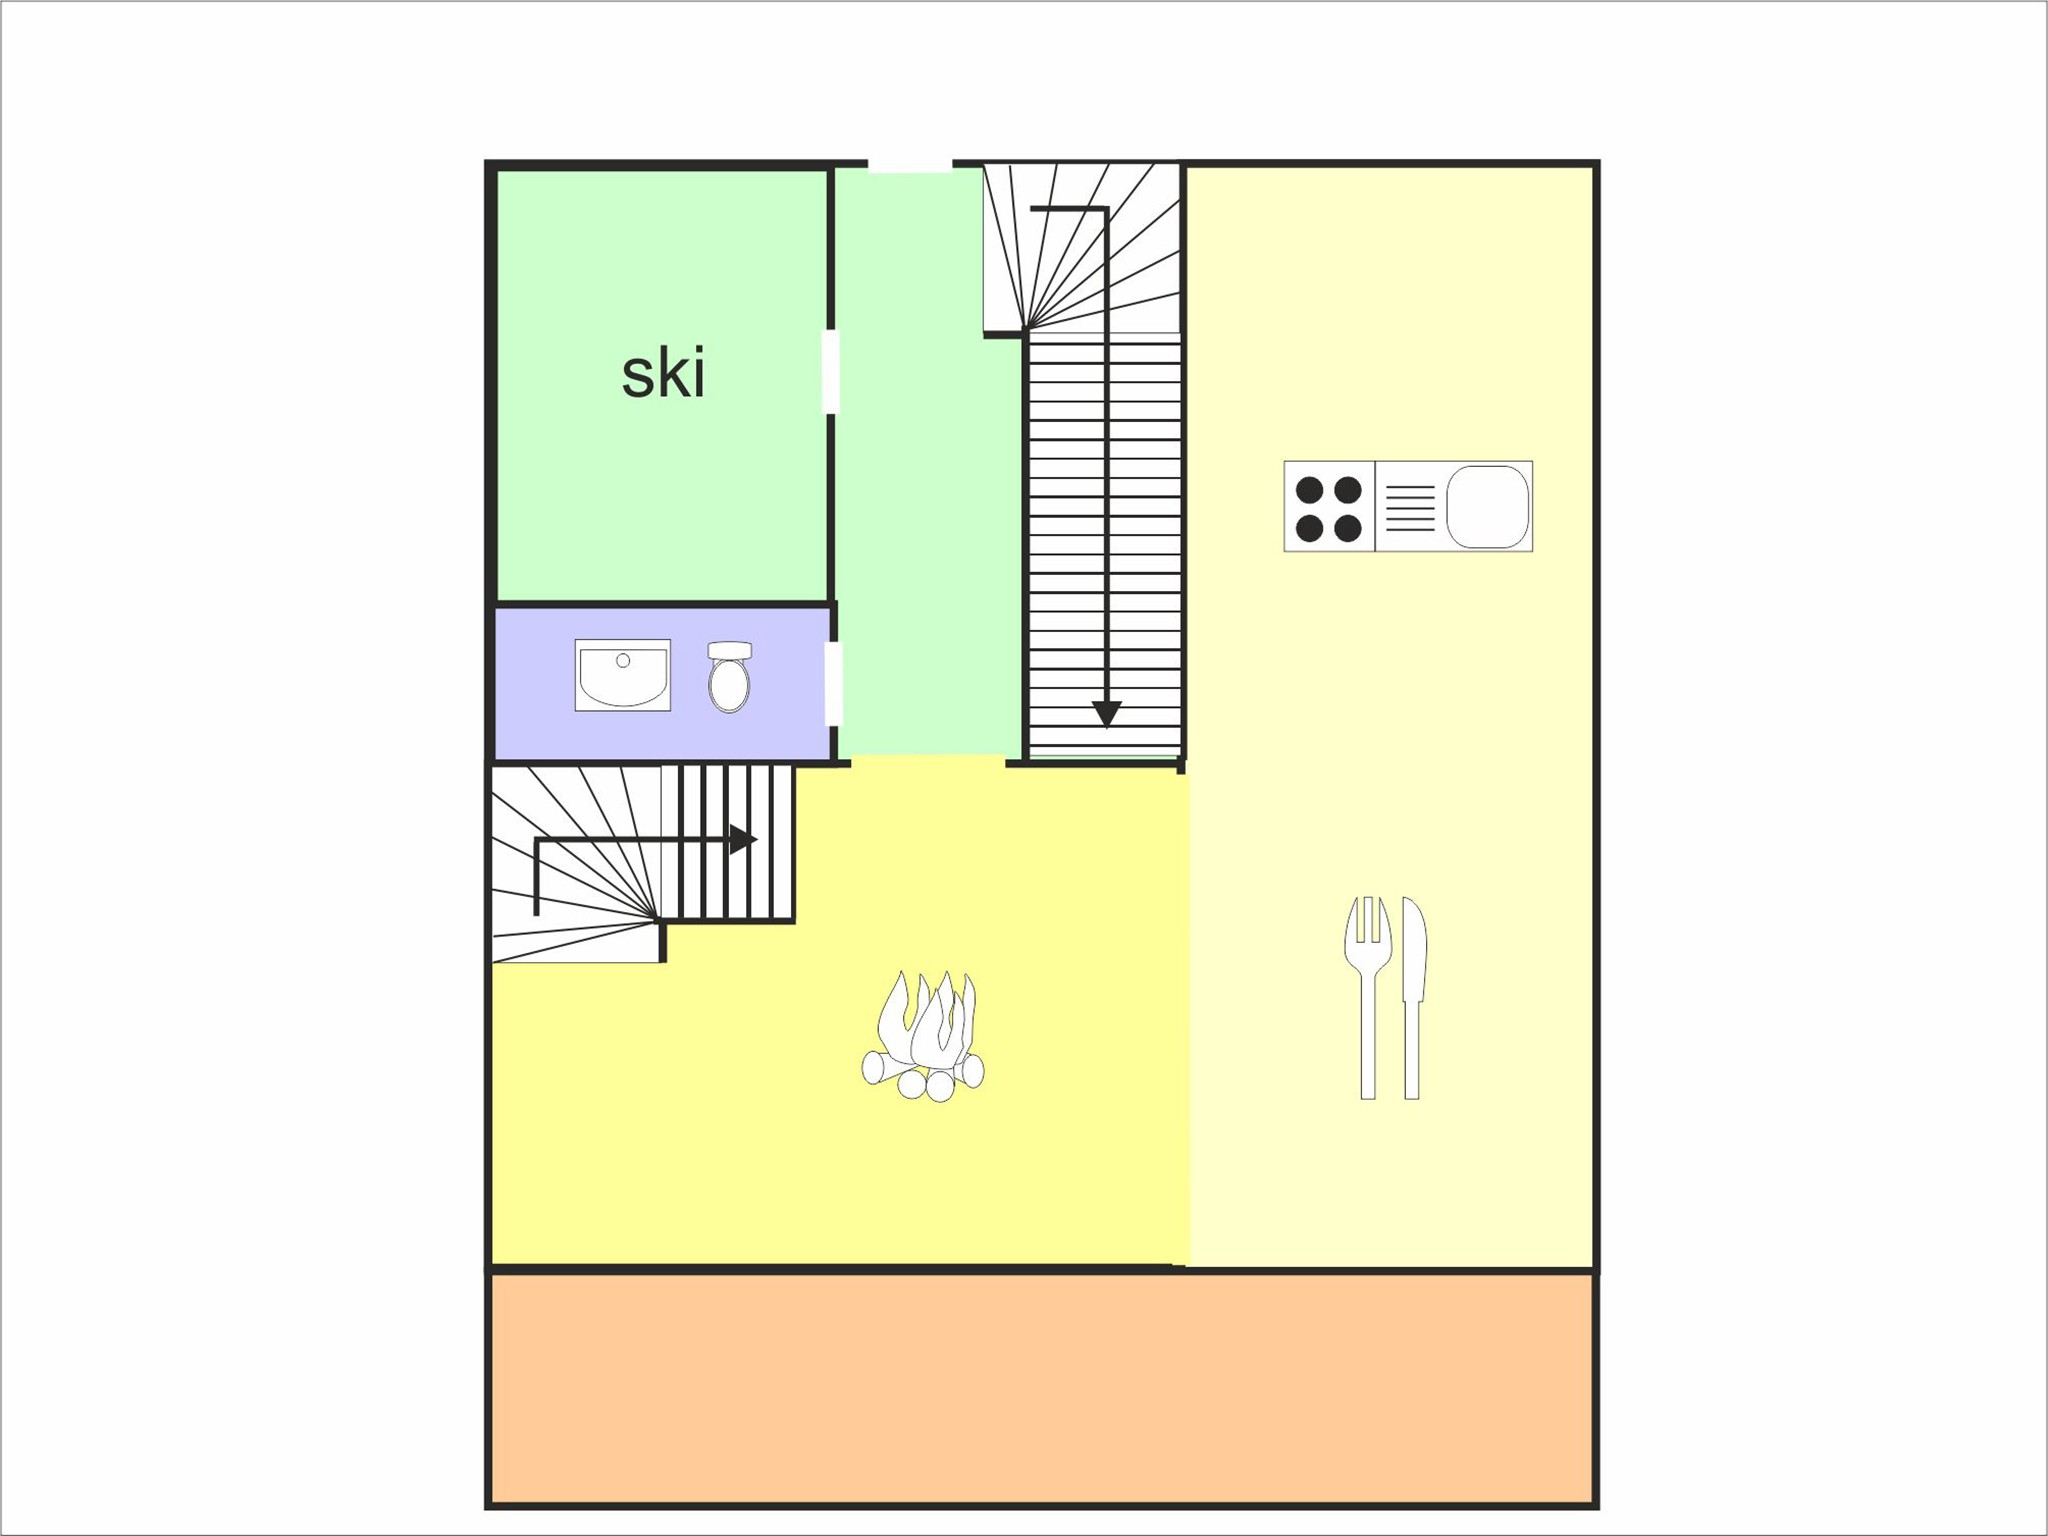 Chalet Chaud - floor plan - level 2